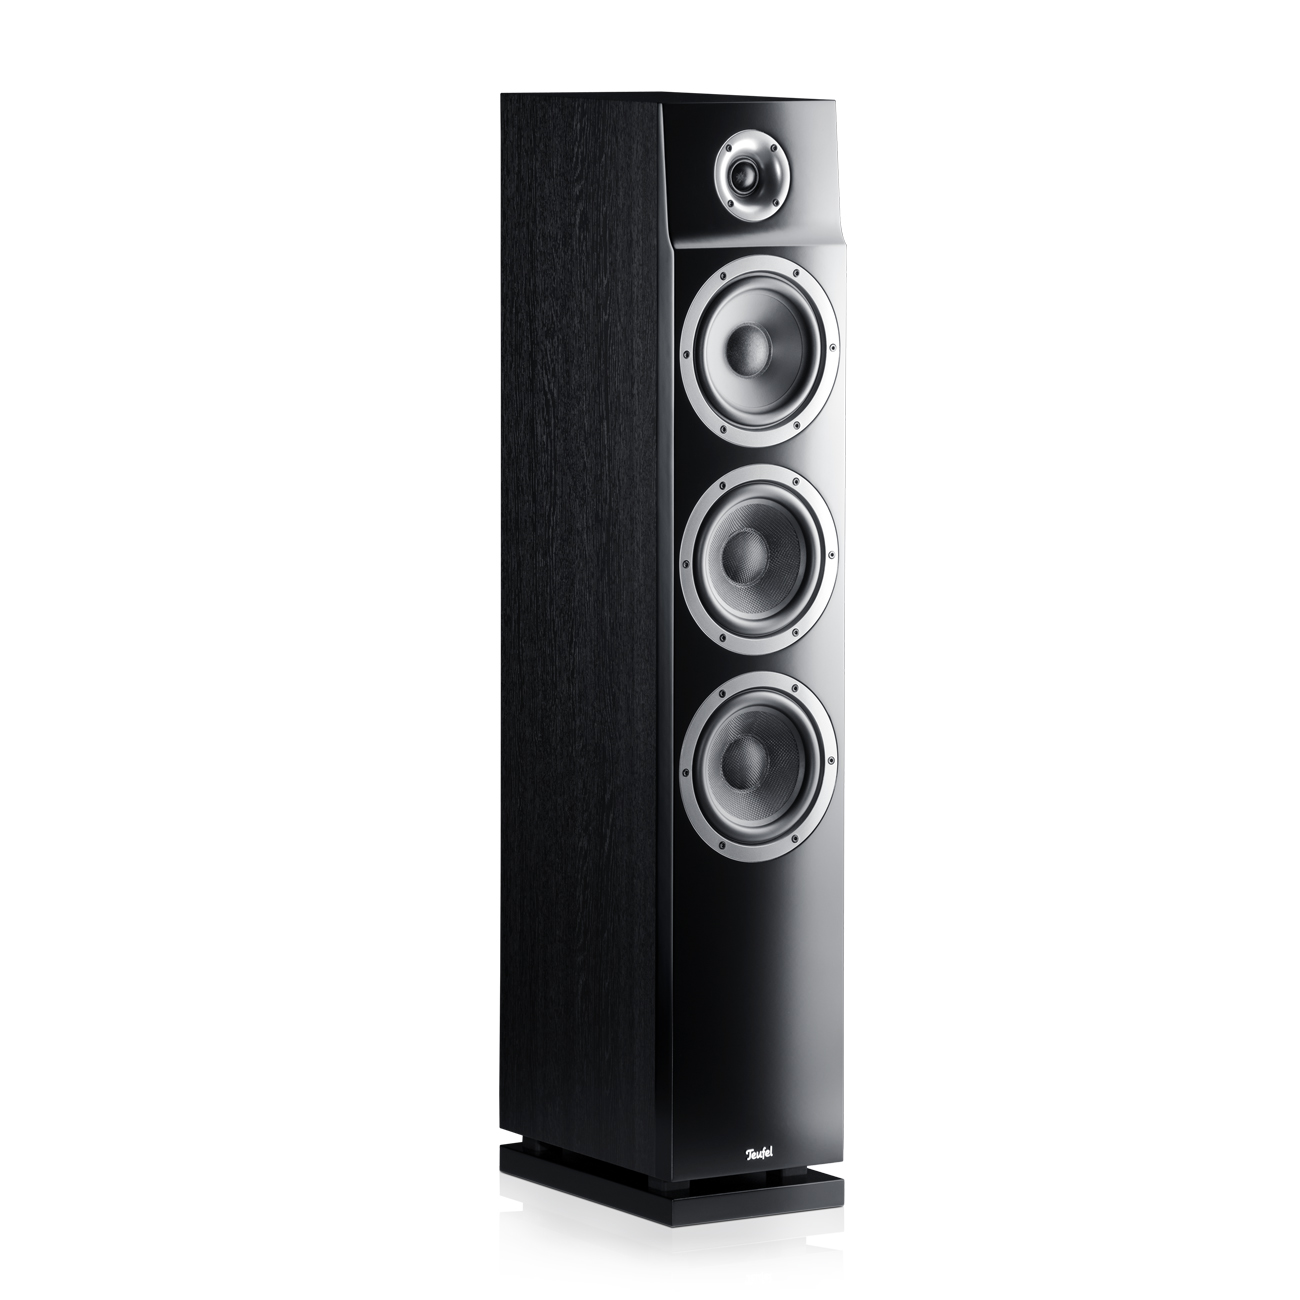 teufel 8067 t 500 mk2 stand lautsprecher hifi speaker. Black Bedroom Furniture Sets. Home Design Ideas